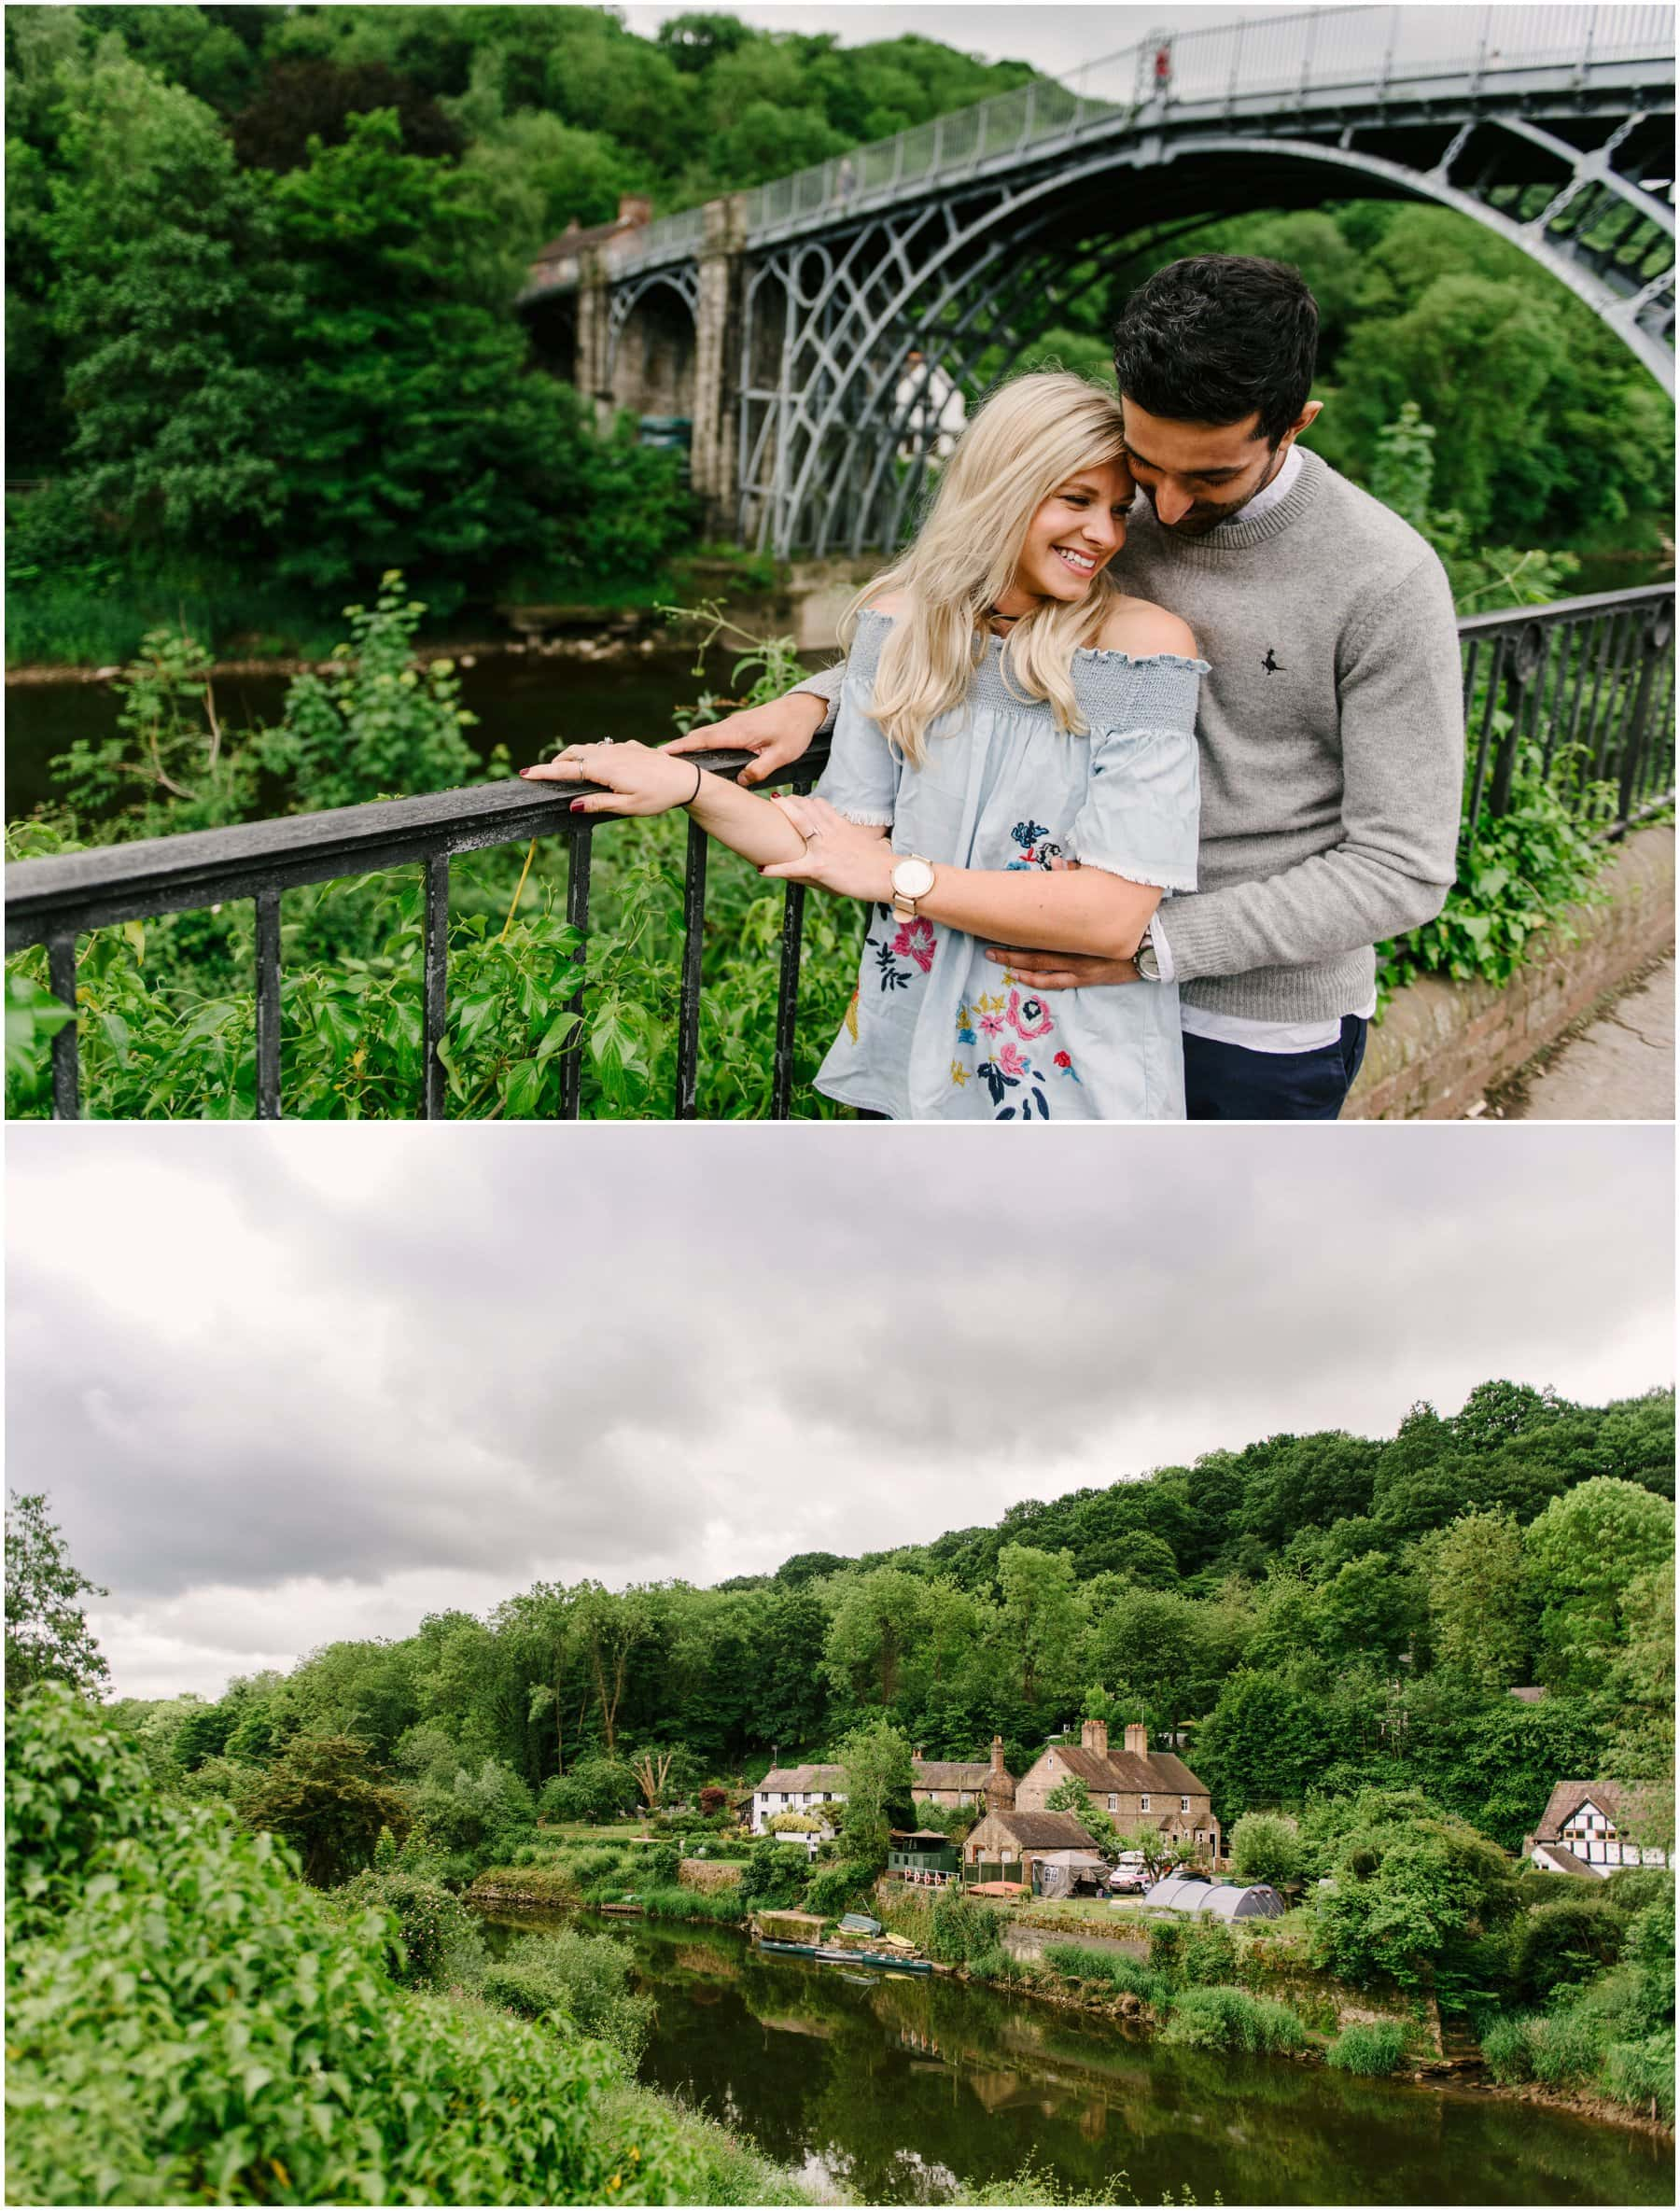 Kirsty and Yovender's pre-wedding engagement shoot at Ironbridge Gorge in Telford ahead of their Packington Moor wedding by Lisa Carpenter Photography, West Midlands and Birminghambased wedding photographer specialising in quirky, alternative, fun, relaxed wedding photos.